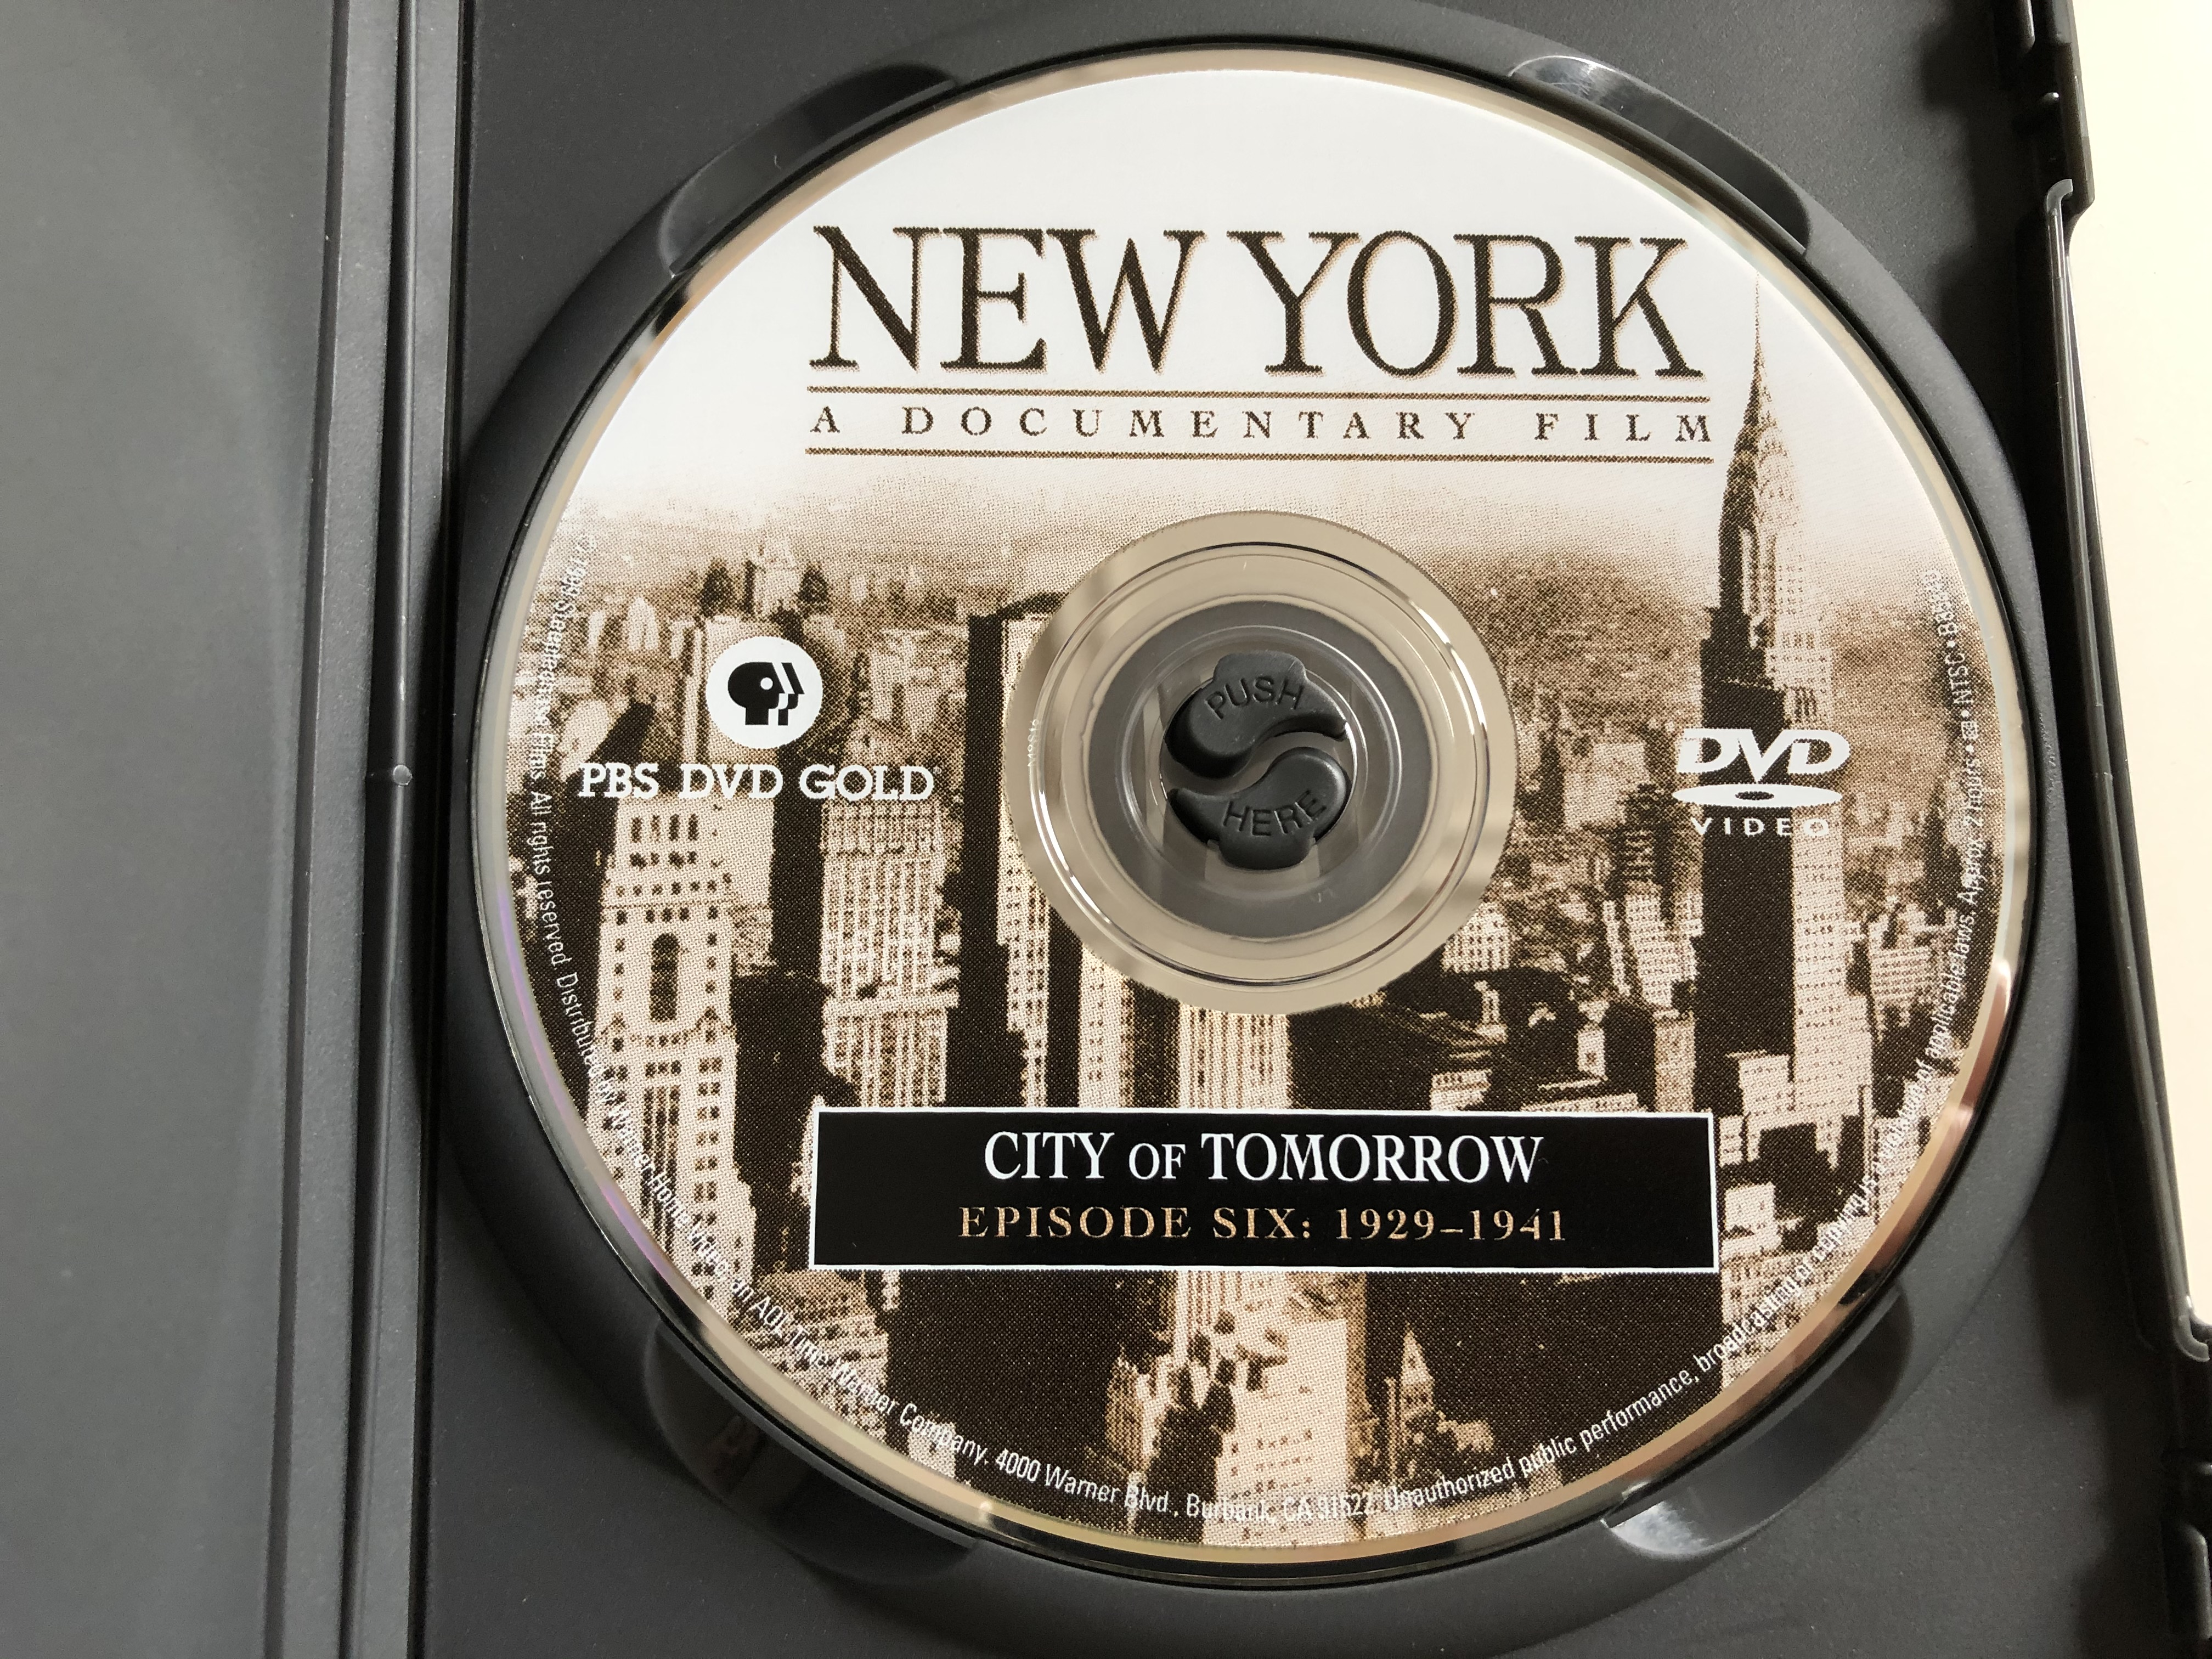 new-york-episode-6-1929-to-1941-dvd-2001-directed-by-ric-burns-2.jpg